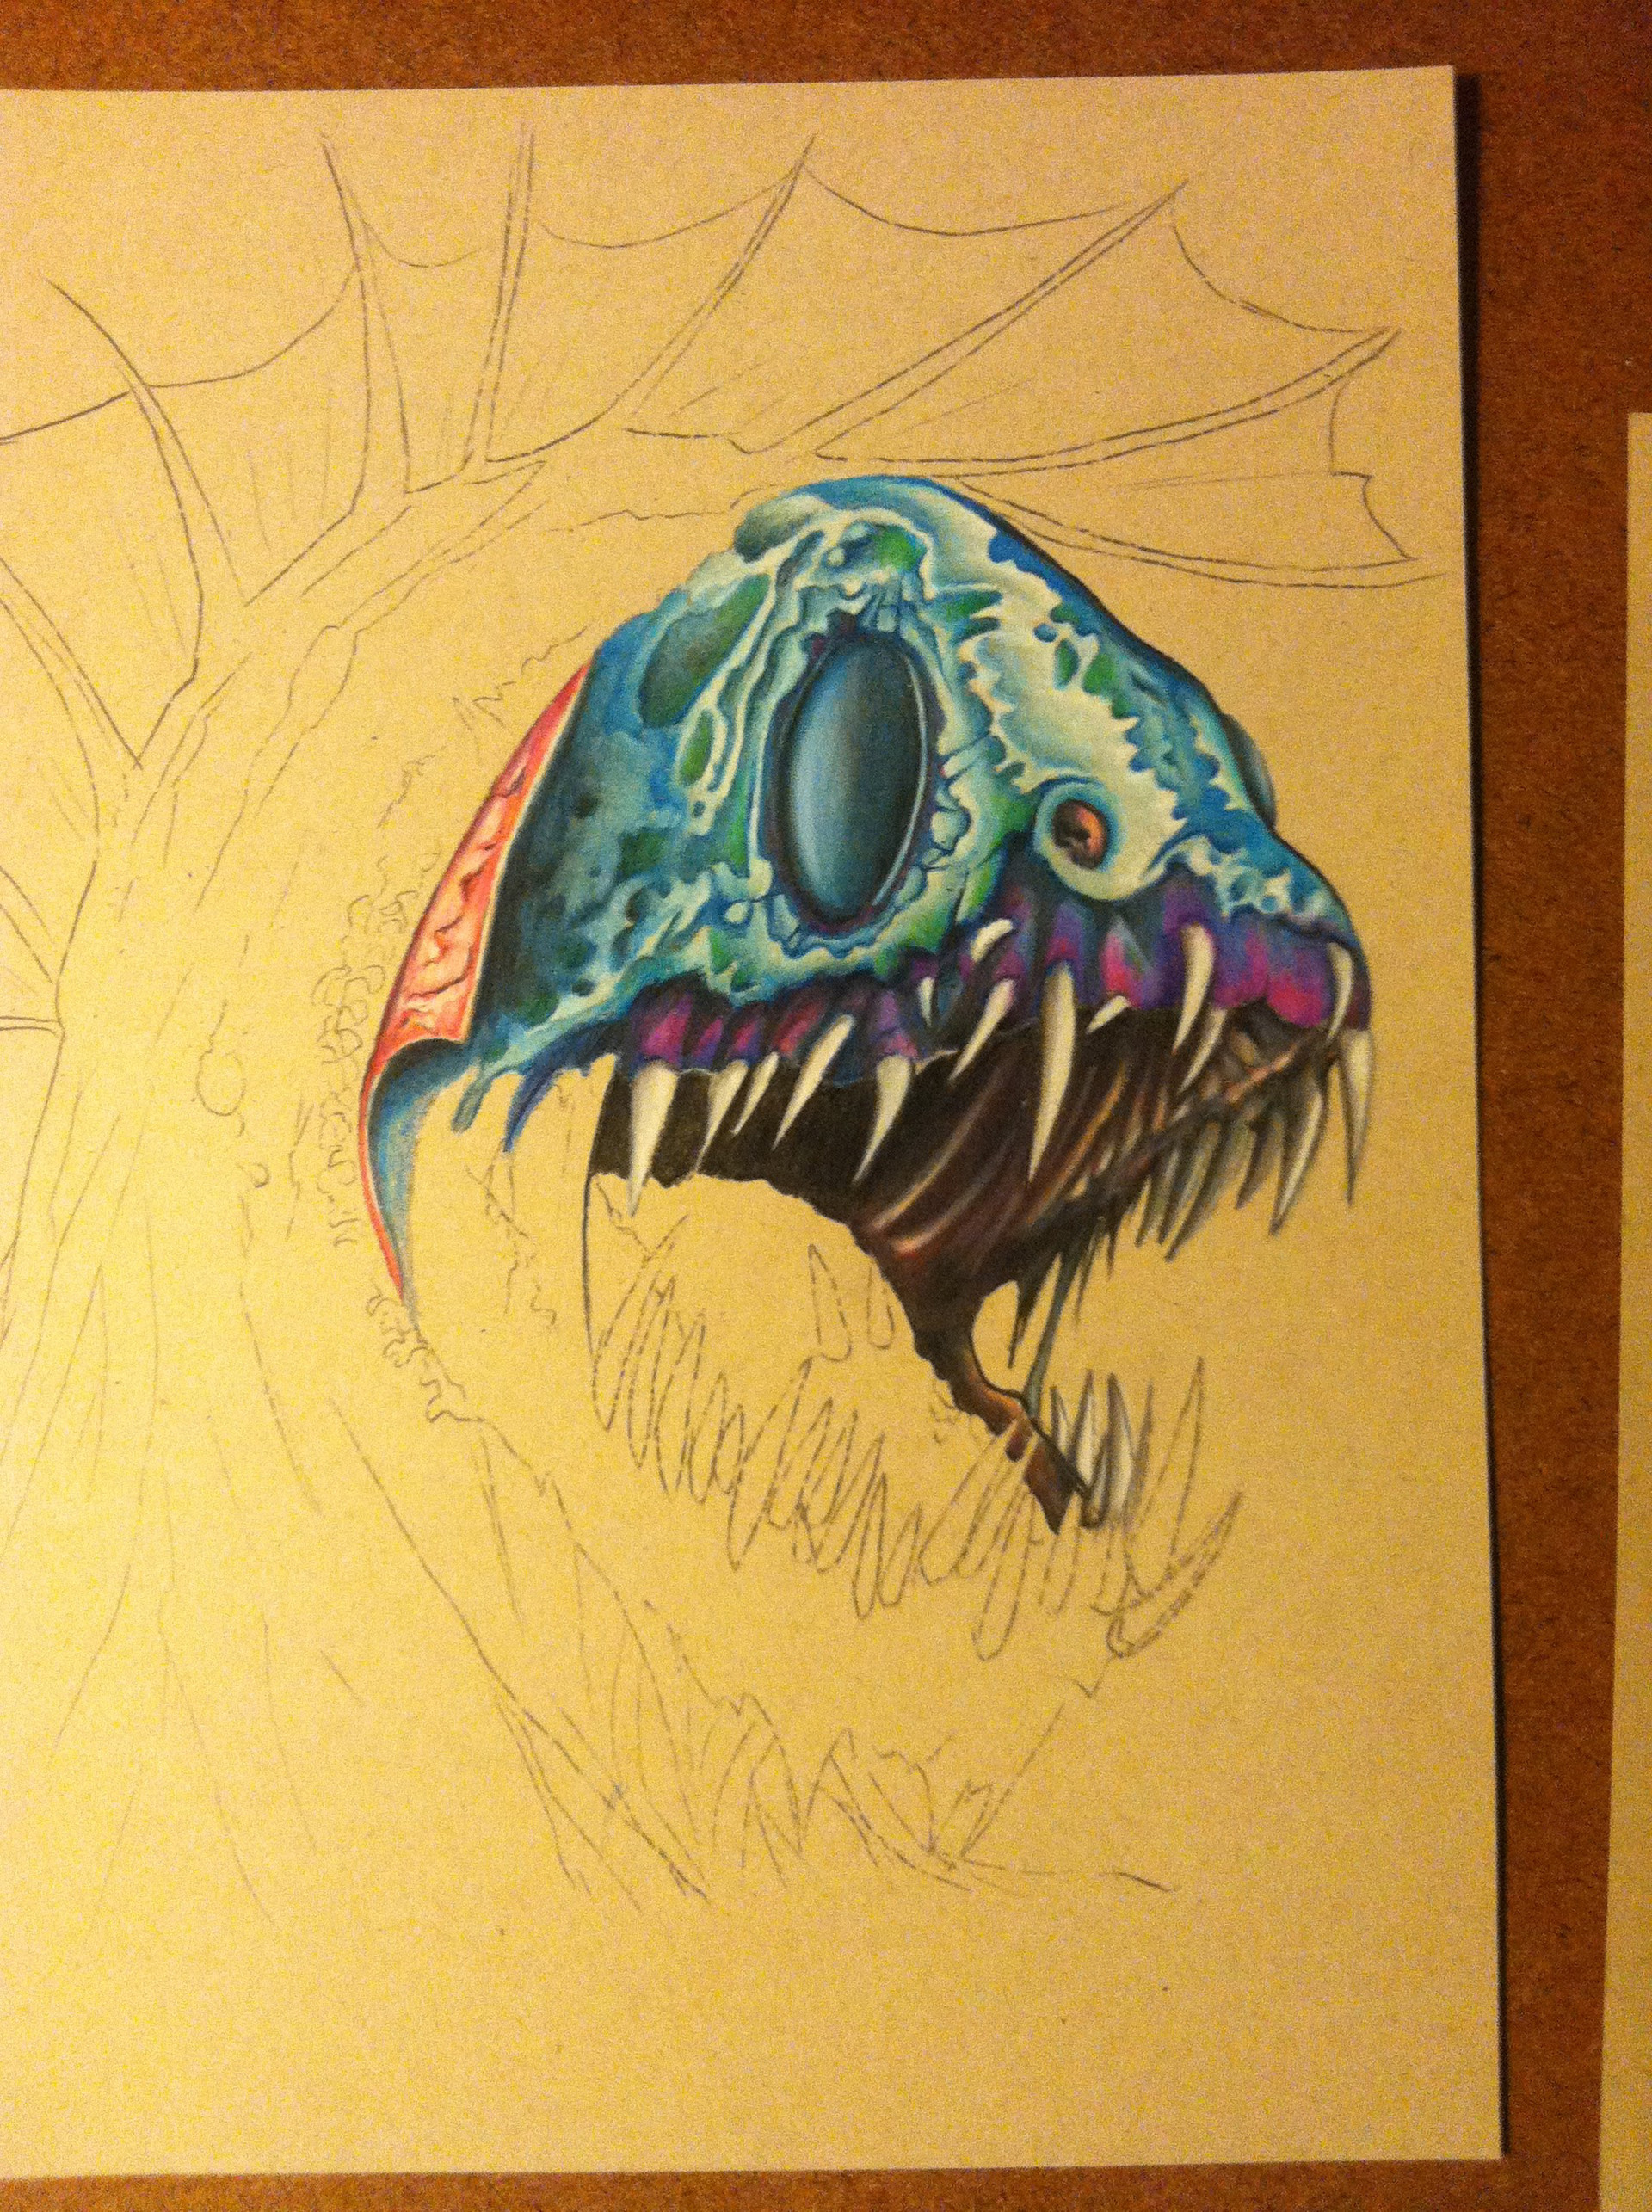 Mike johnston ruinedworld wip prismacolor01